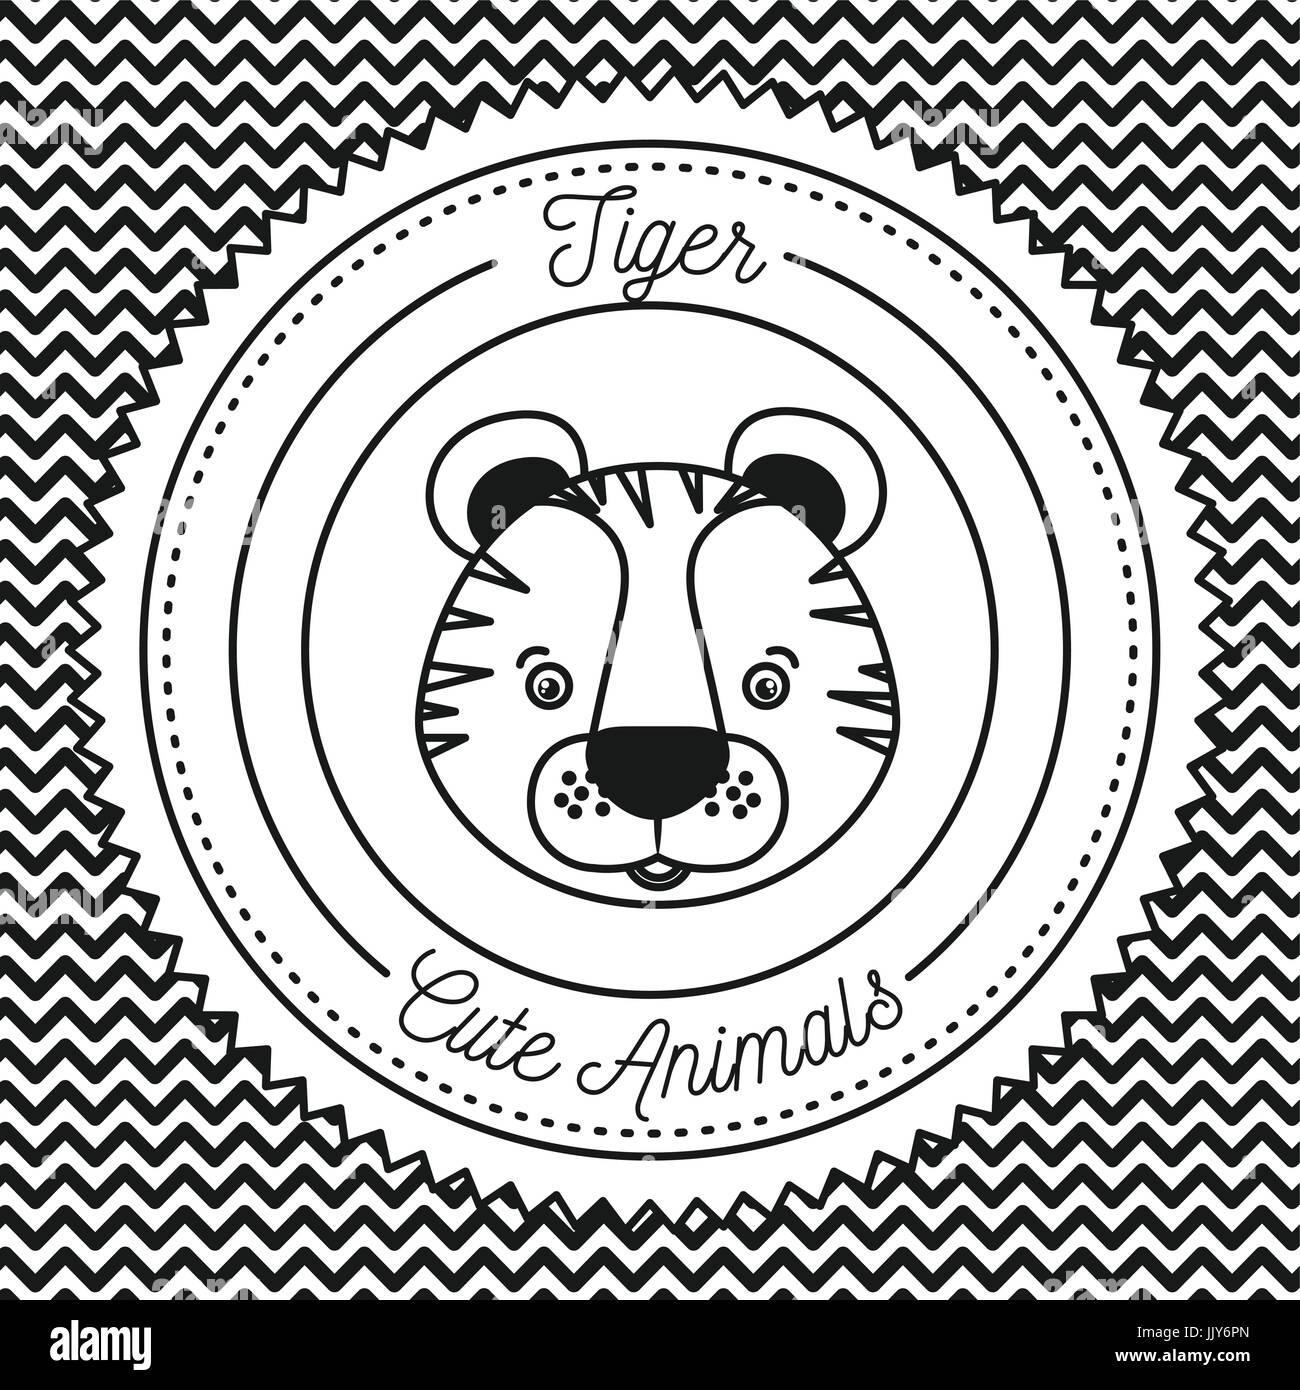 irregular baby stock photos irregular baby stock images alamy  monochrome irregular lines background with silhouette frame decorative and face tiger cute animals text stock